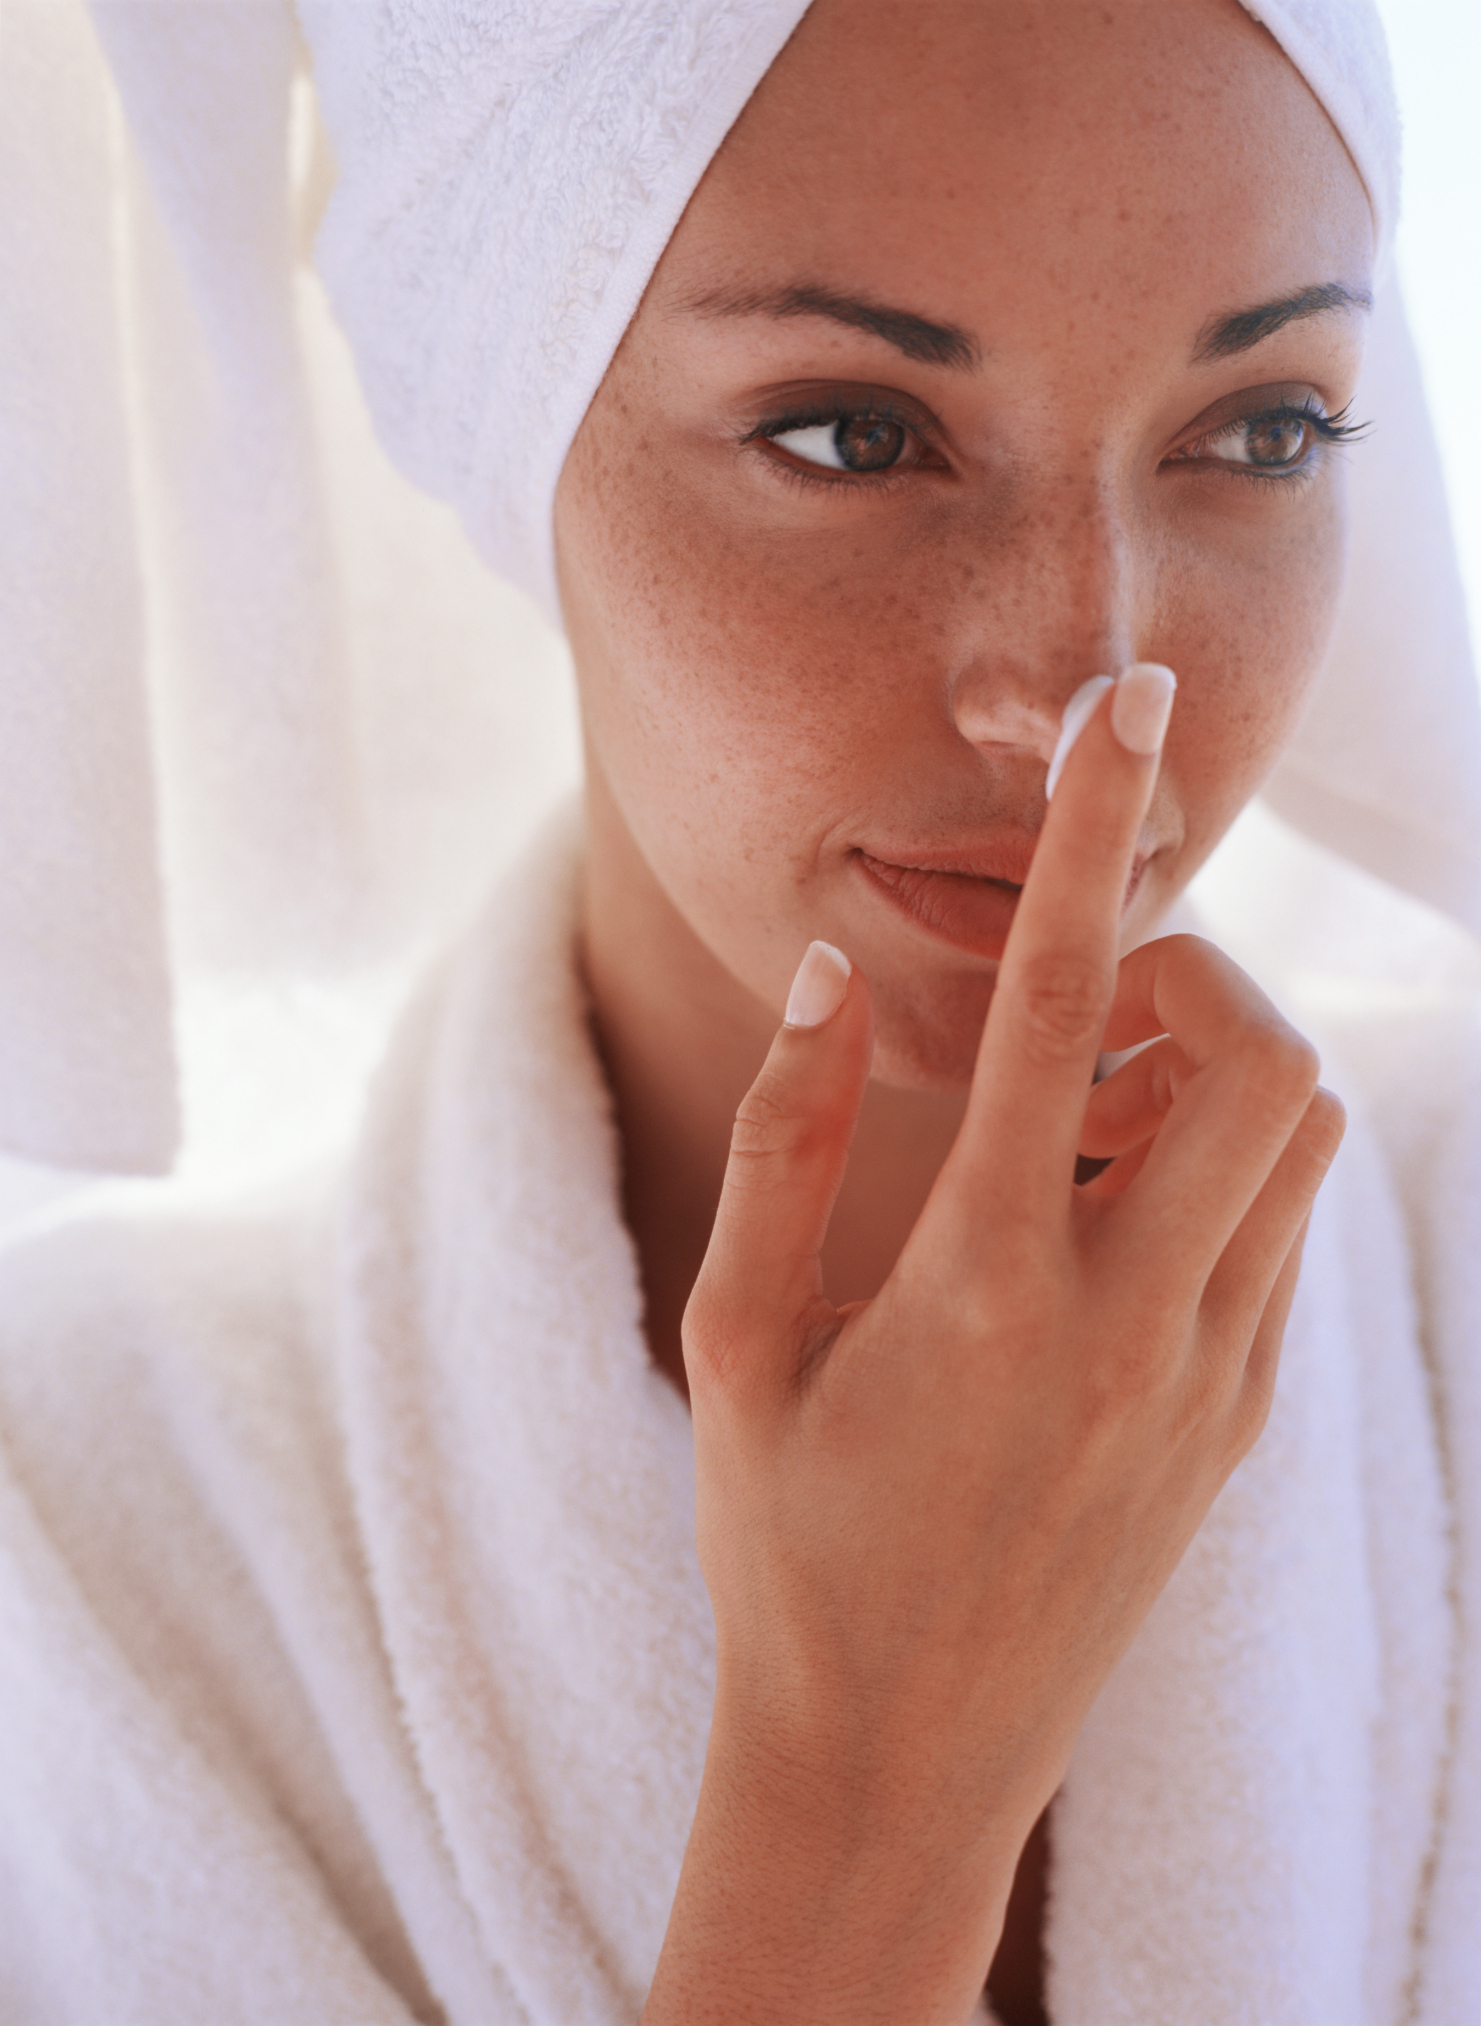 Ways to Clear Up Perioral Dermatitis Quickly